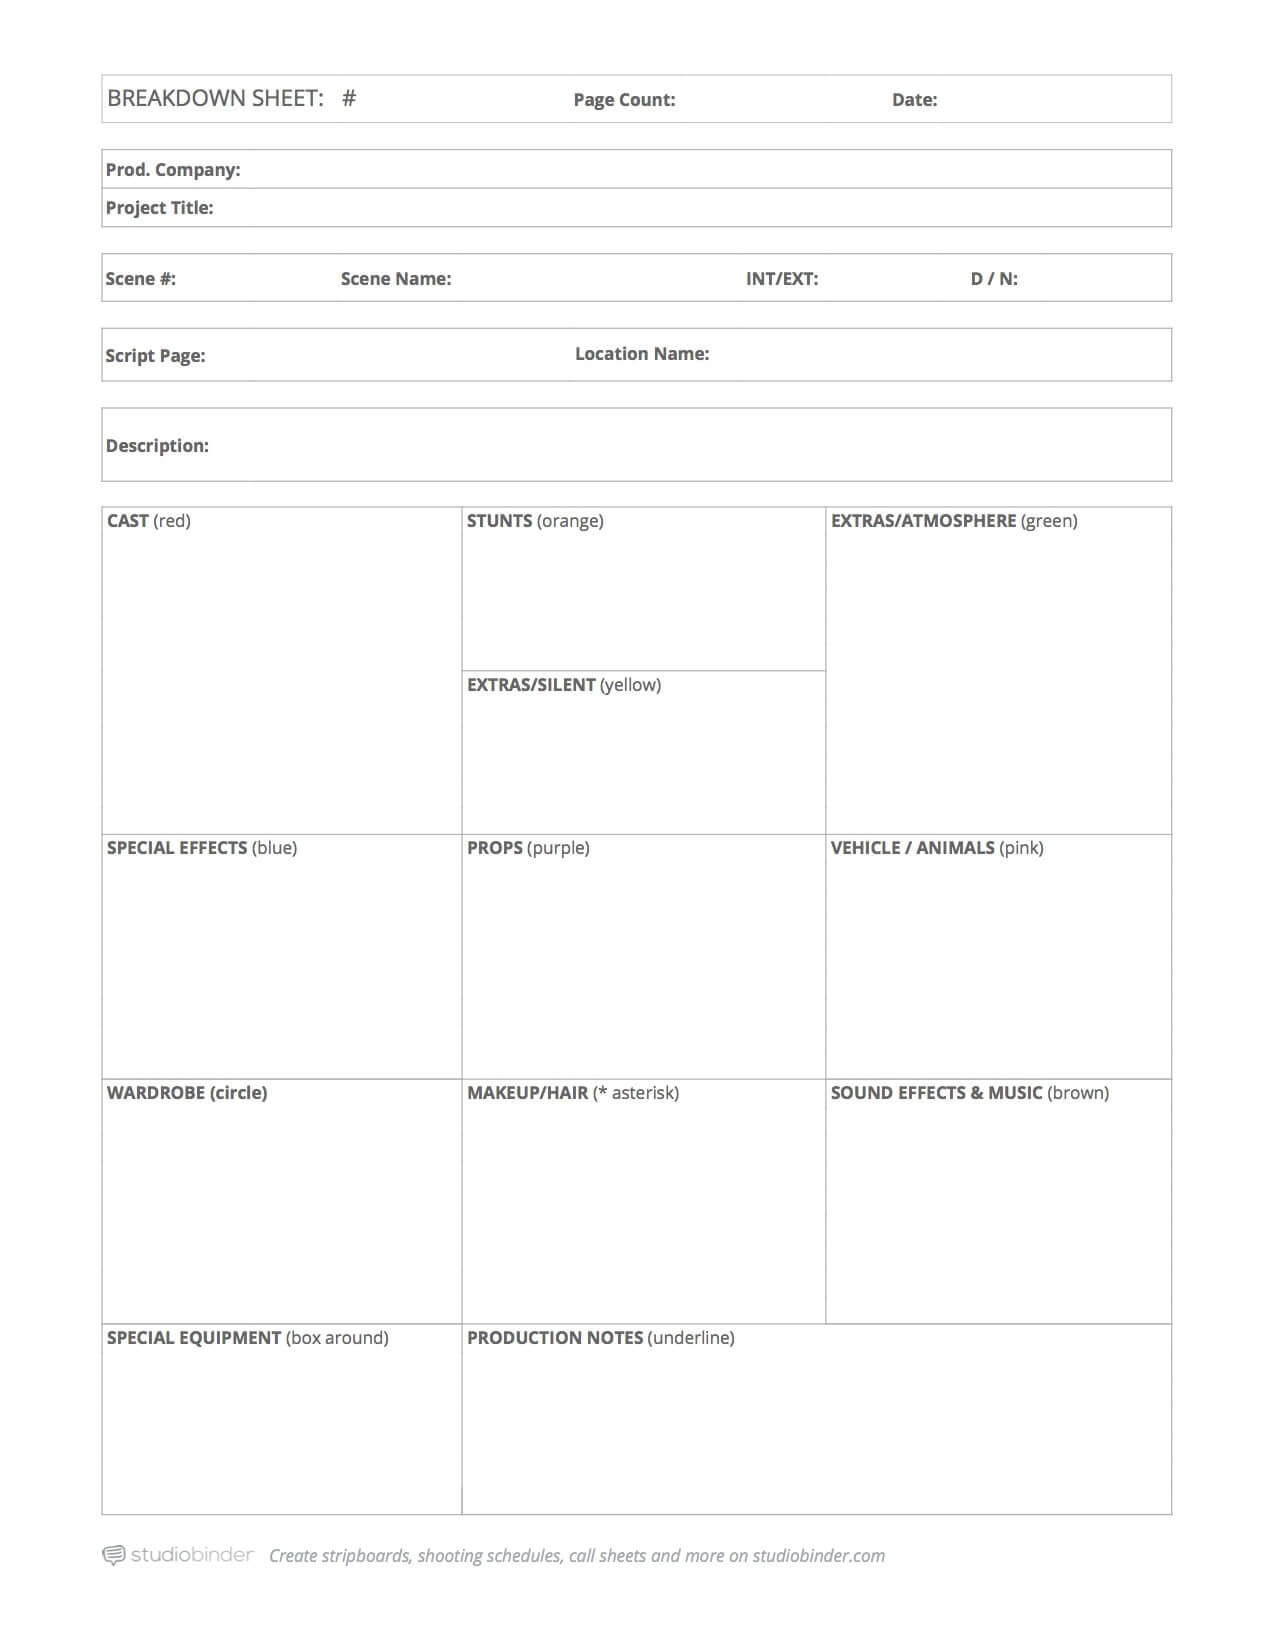 Script Breakdown Template Sheet Studiobinder